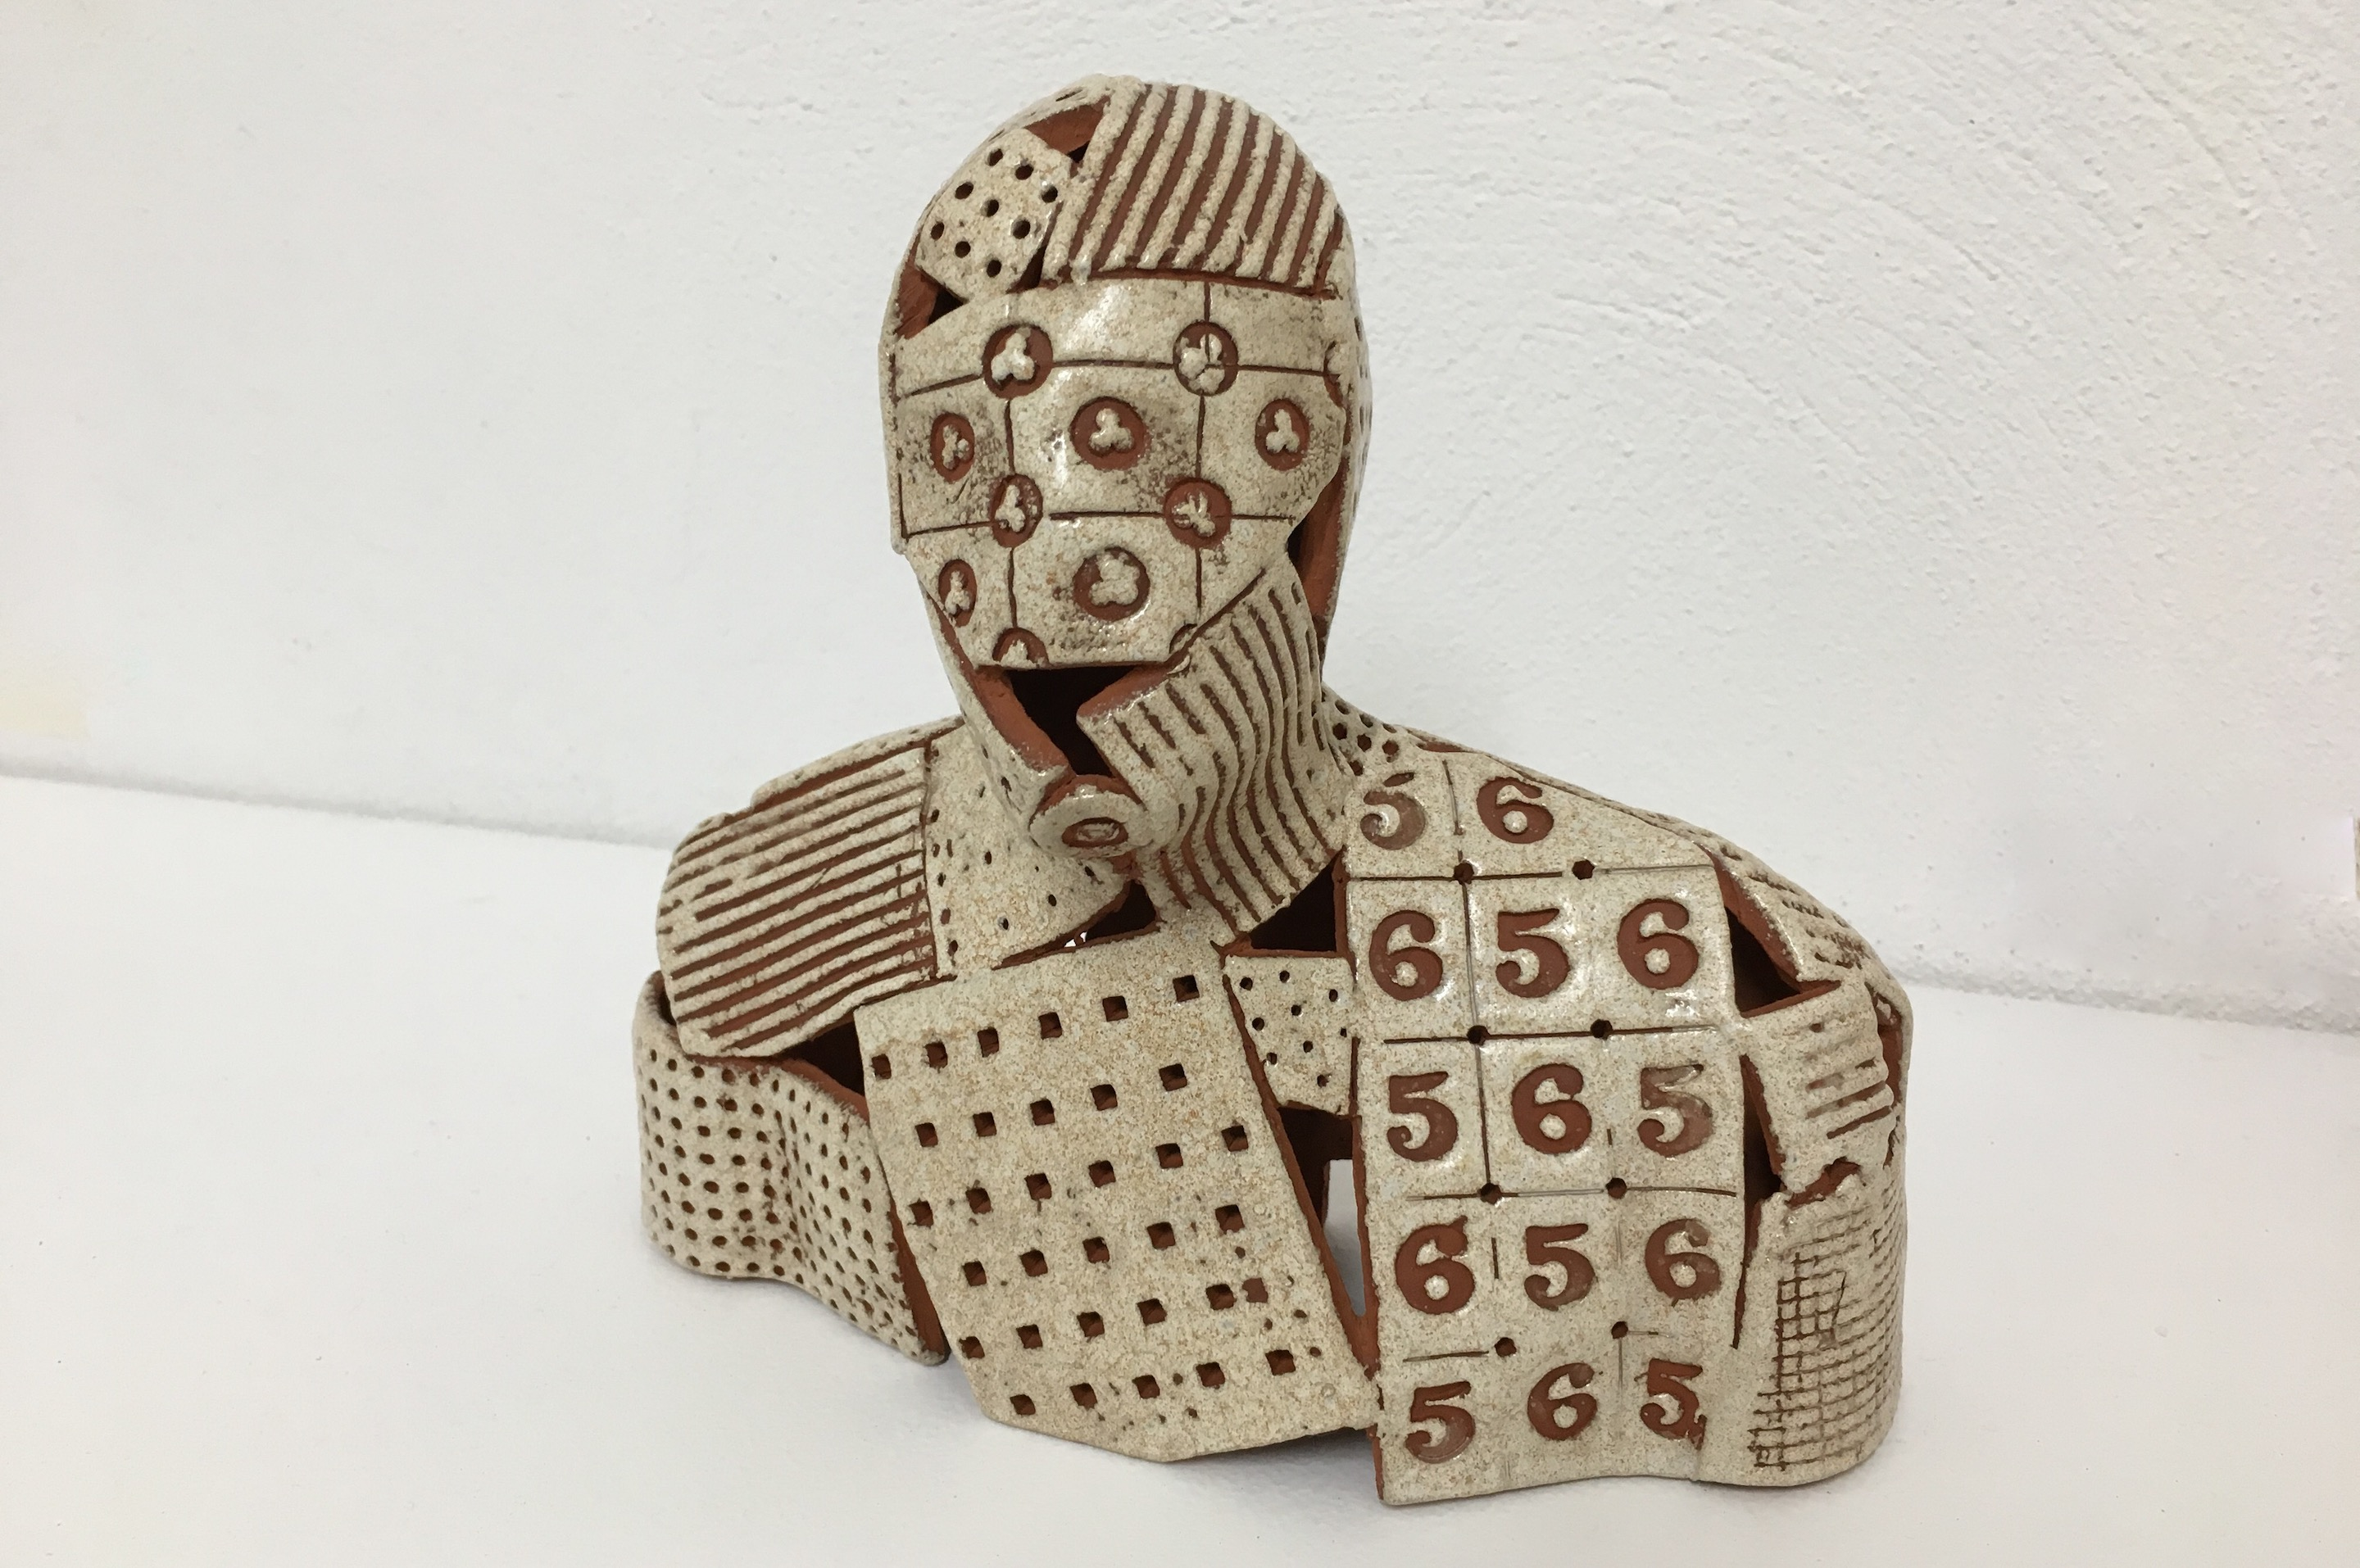 Glazed terracotta figure. One of the elements from 'Enlightenment', an evolving project installation in mixed media